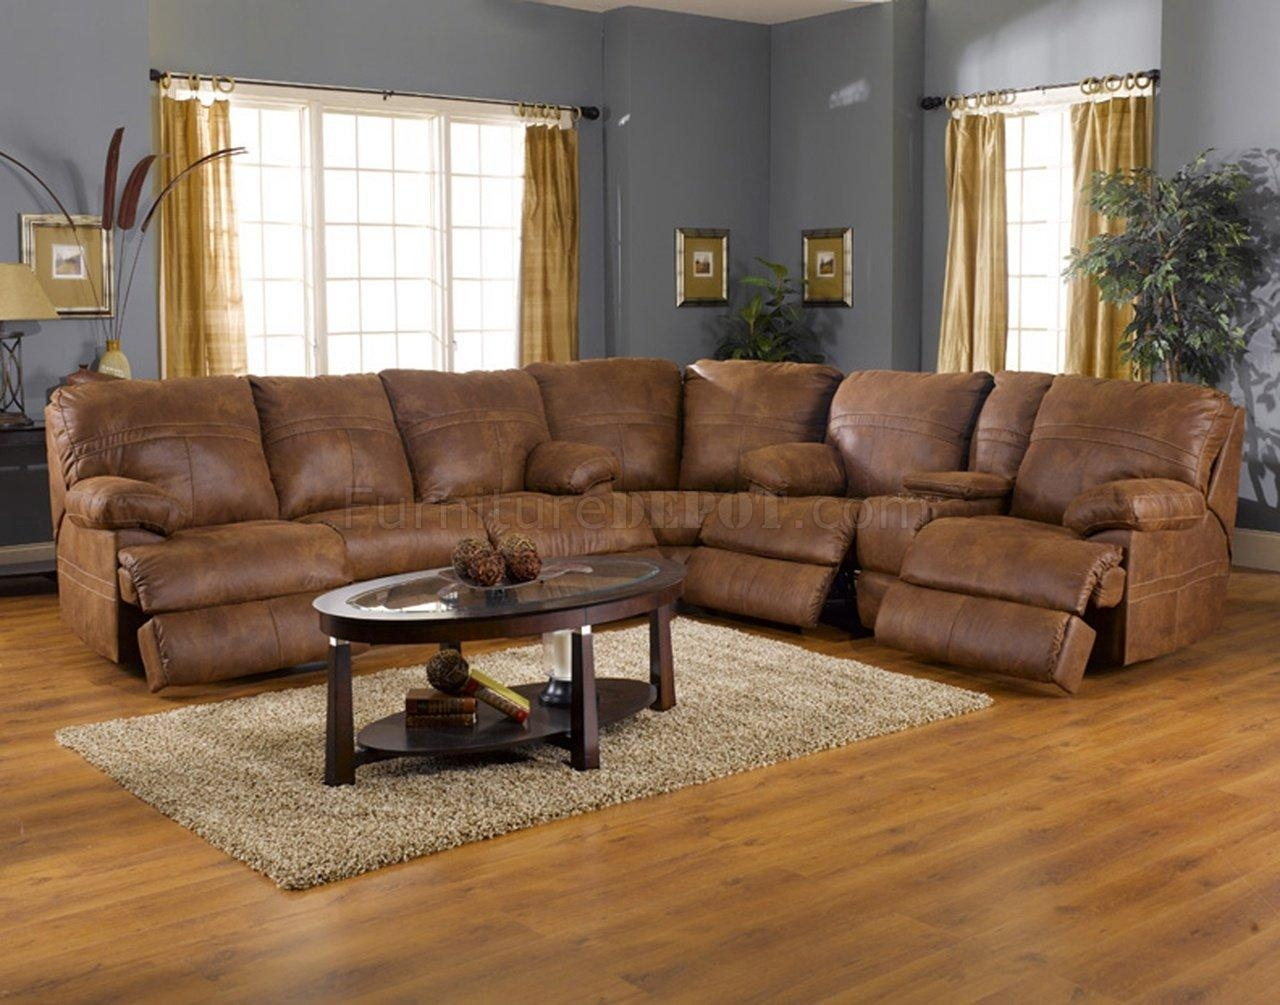 Sofas Center : Sectional With Chaise Cheap Couches Piece Sams Club Intended For U Shaped Reclining Sectional (Image 19 of 20)